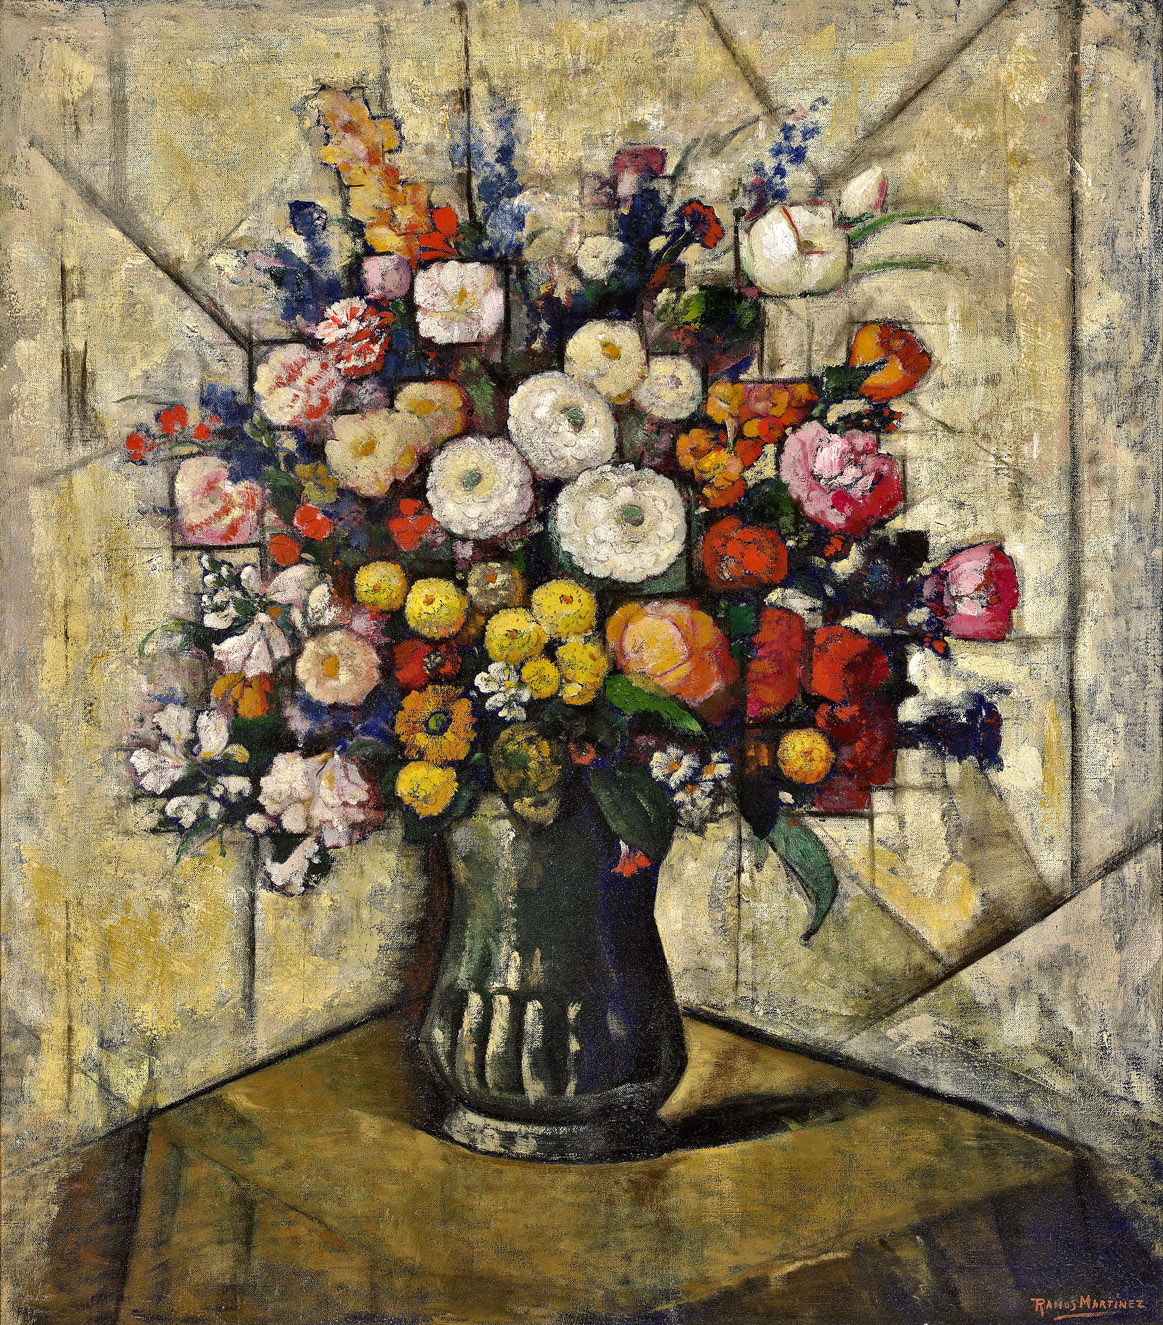 Alfredo Ramos Martinez (1871 - 1946)   Flores en cristal , c. 1930 oil on canvas 32 x 28 inches; 81.3 x 71.1 centimeters